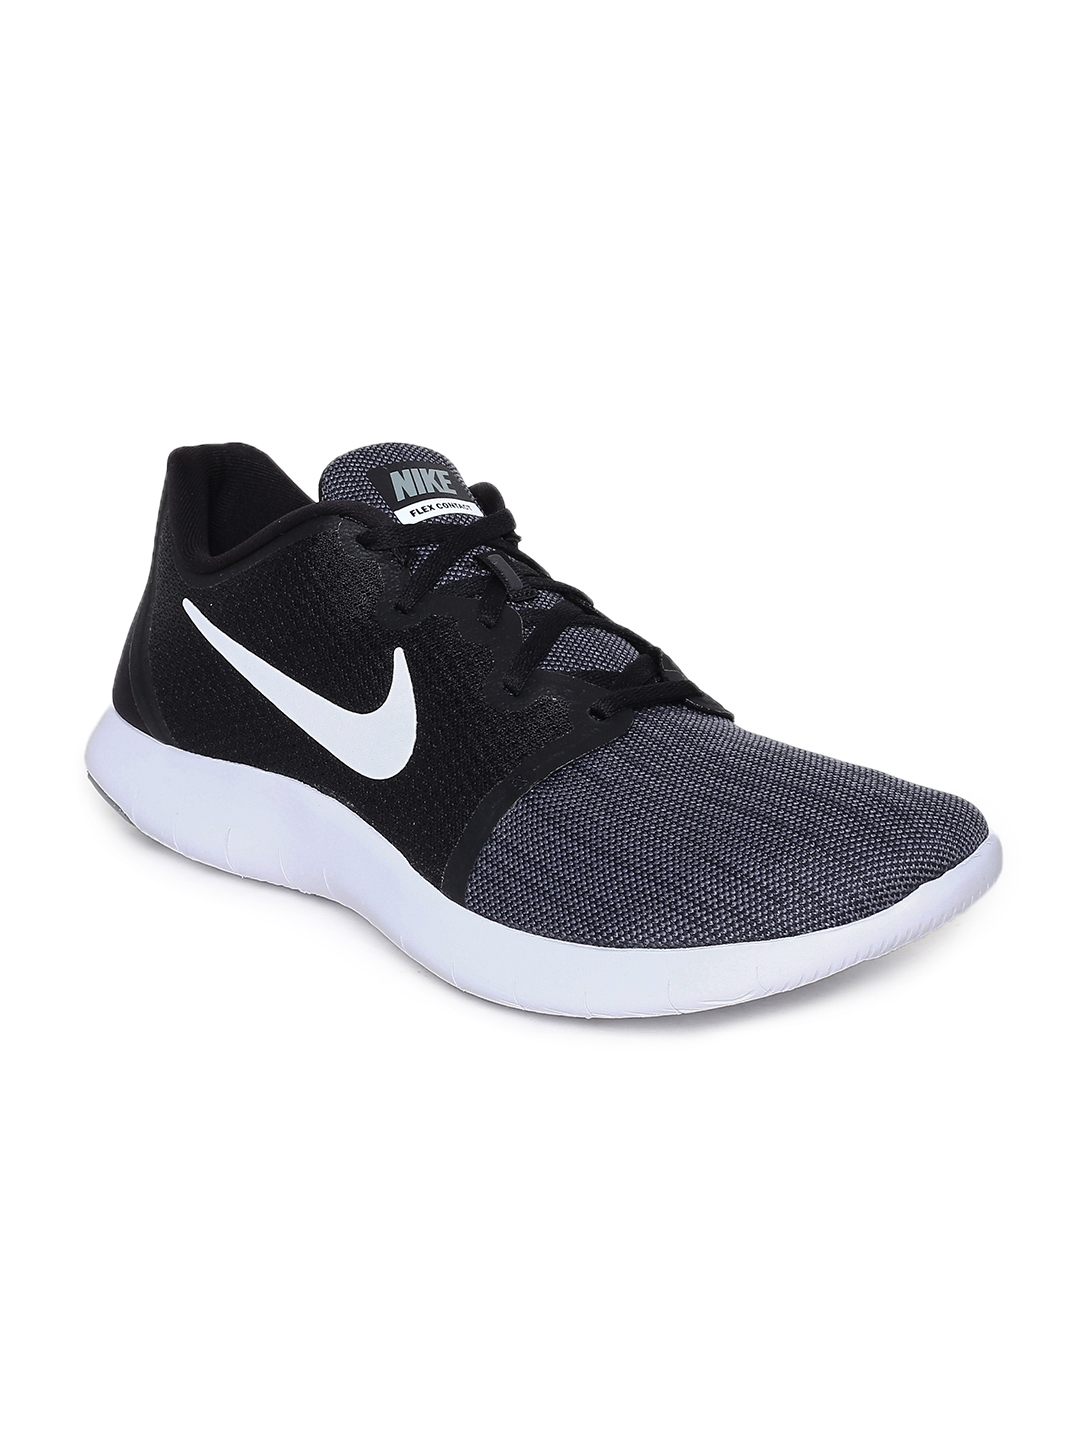 834a7b79b152 Buy Nike Men Black Flex Contact 2 Running Shoes - Sports Shoes for ...